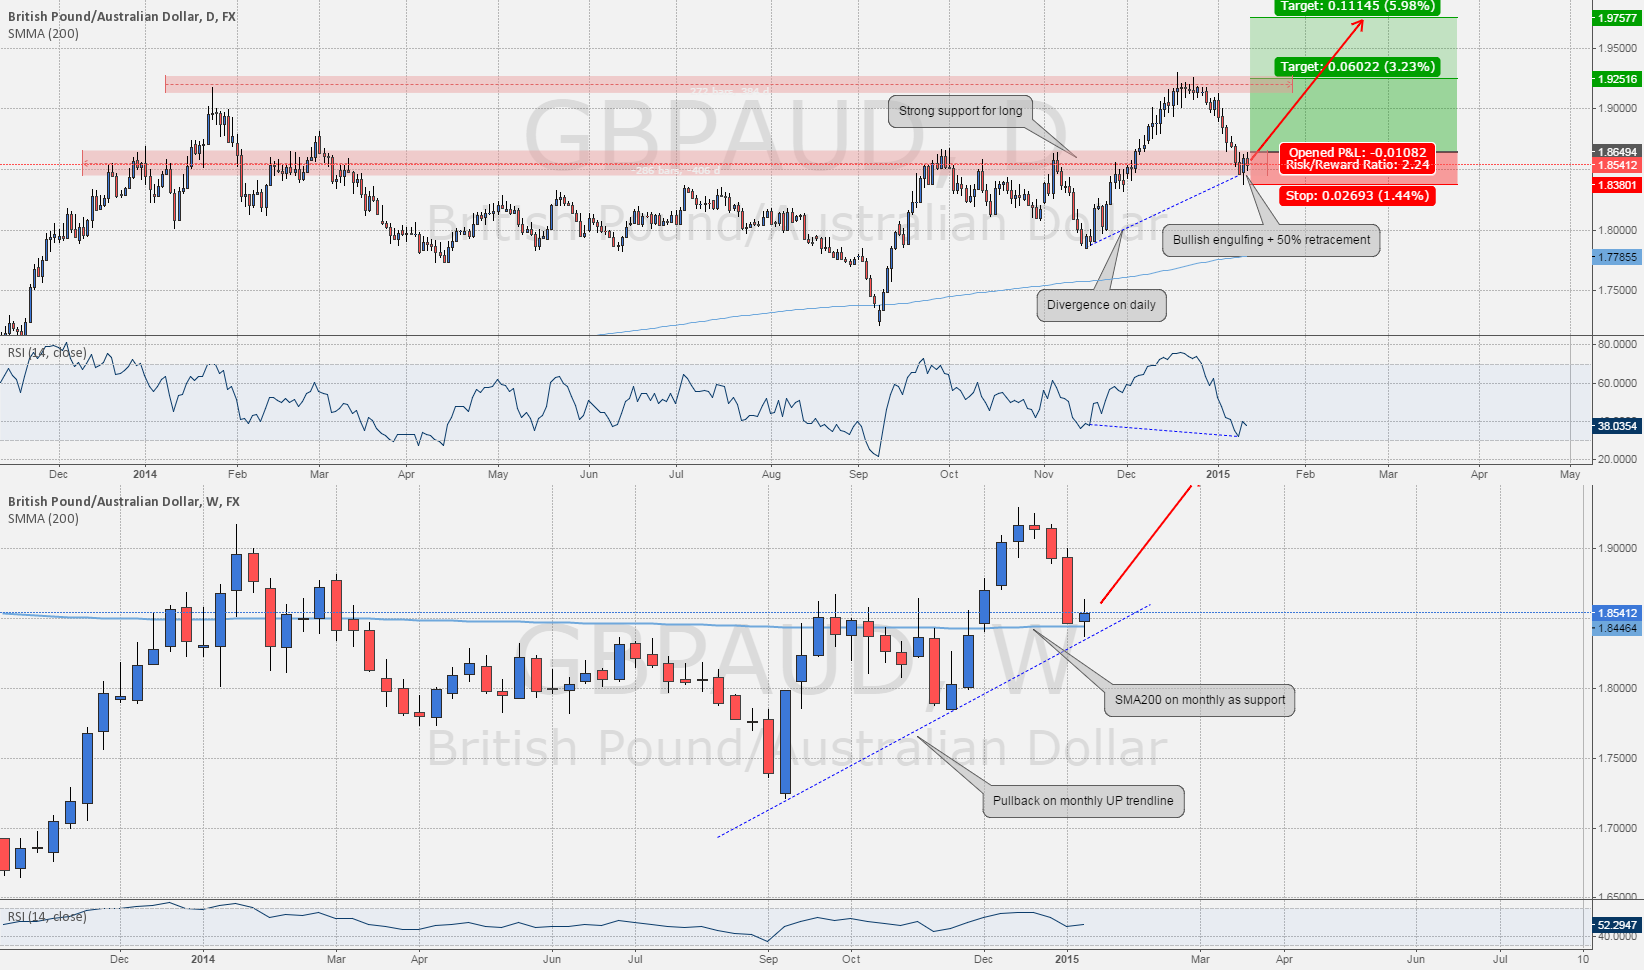 #GBPAUD : Long with lot lot of confluences on daily & monthly